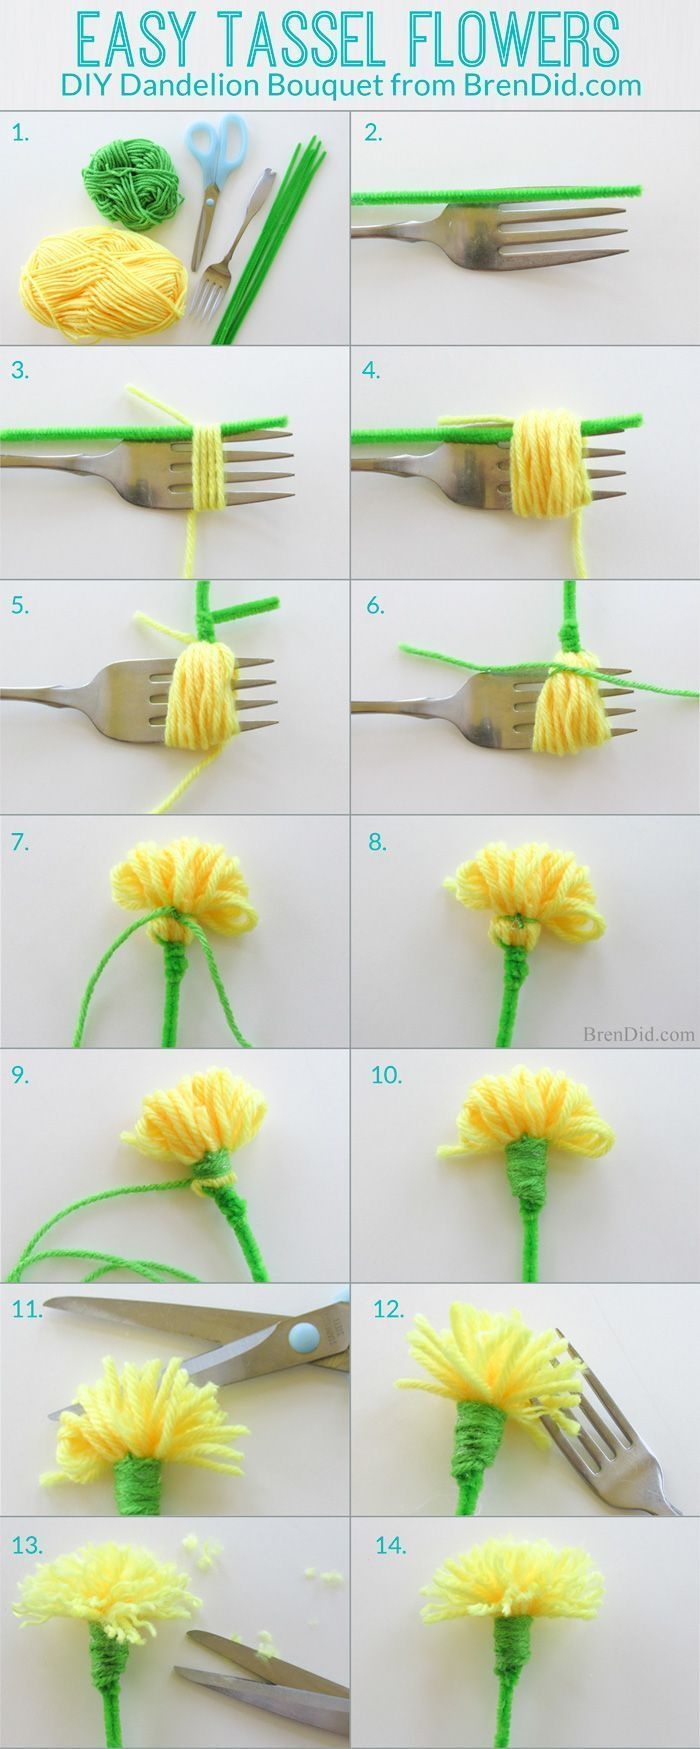 How to make tassel flowers - Make an easy DIY dandelion bouquest with yarn and p...